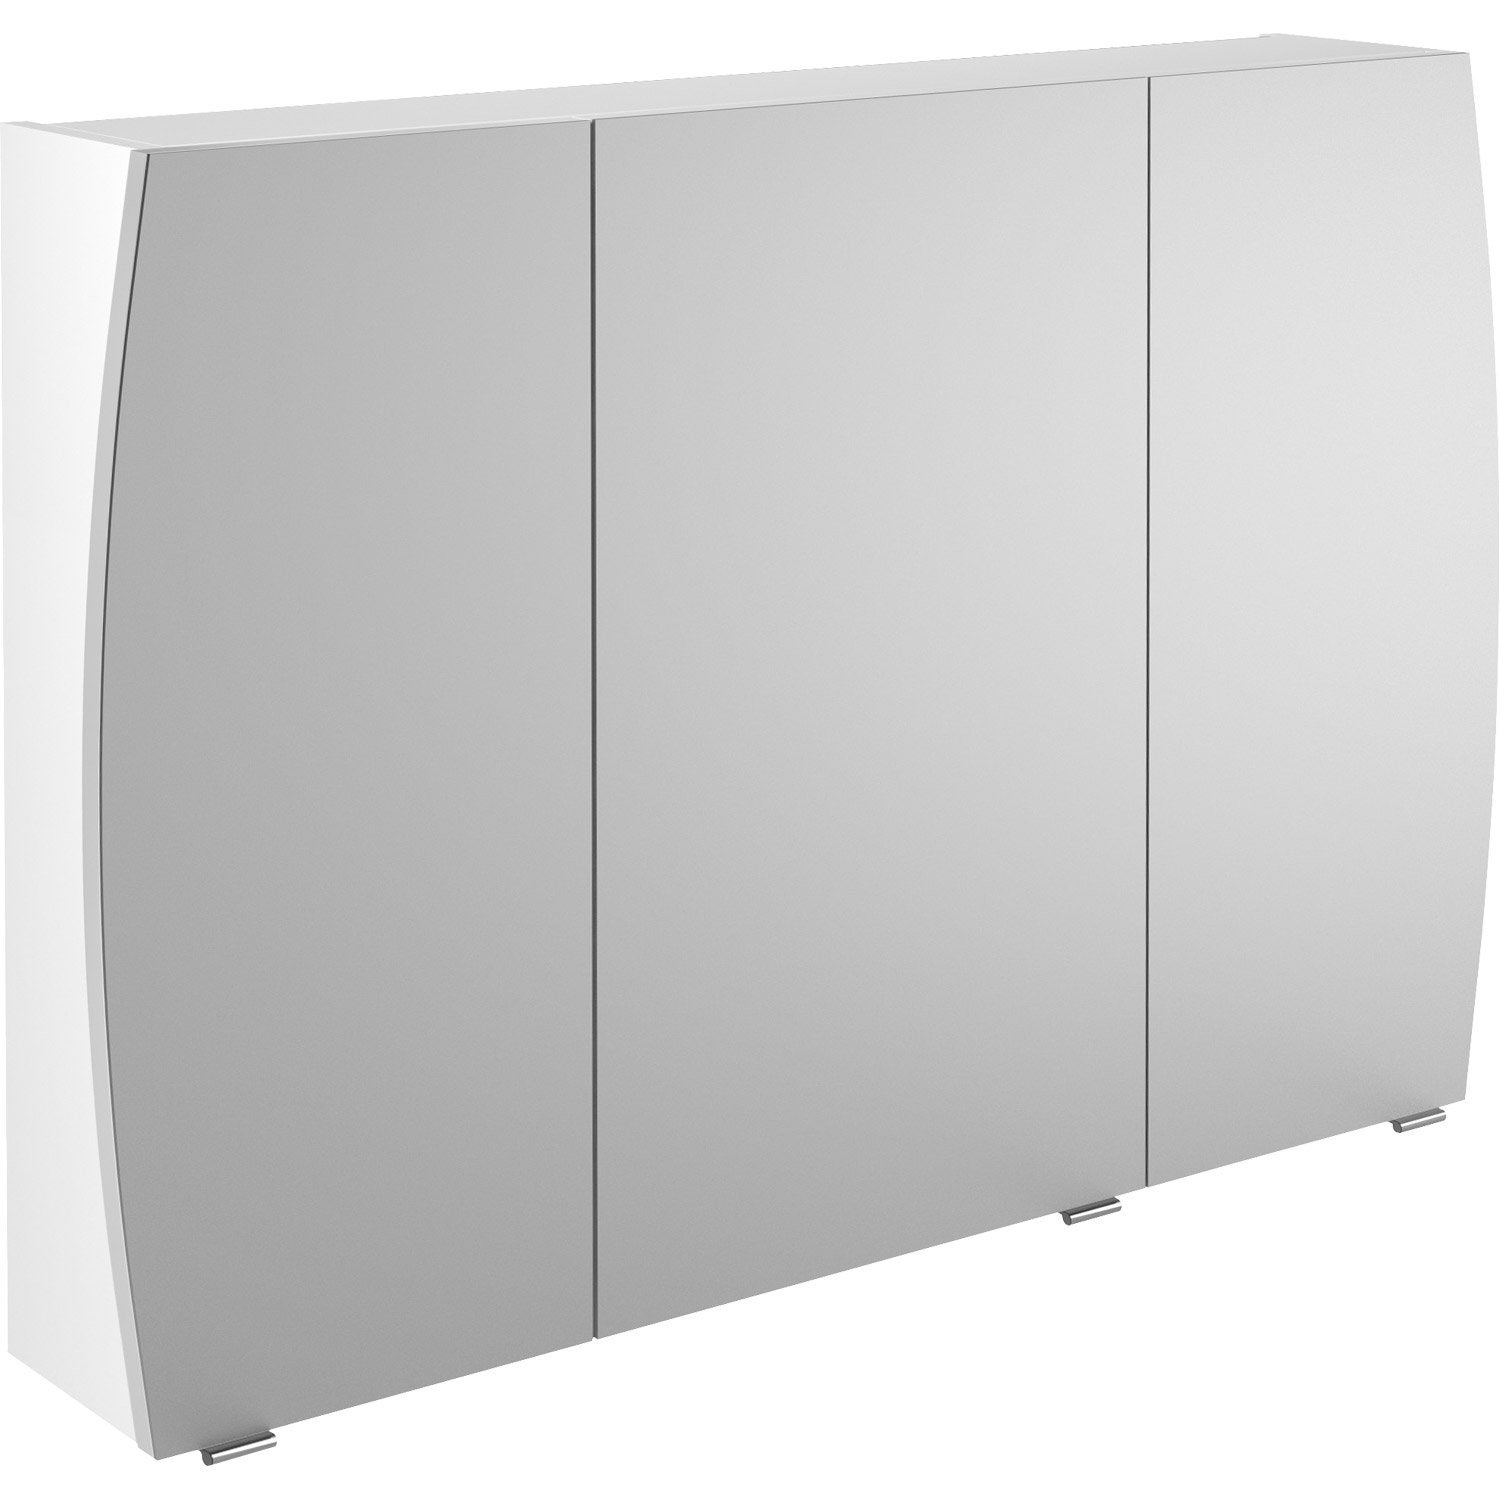 armoire de toilette l 100 cm blanc image leroy merlin. Black Bedroom Furniture Sets. Home Design Ideas